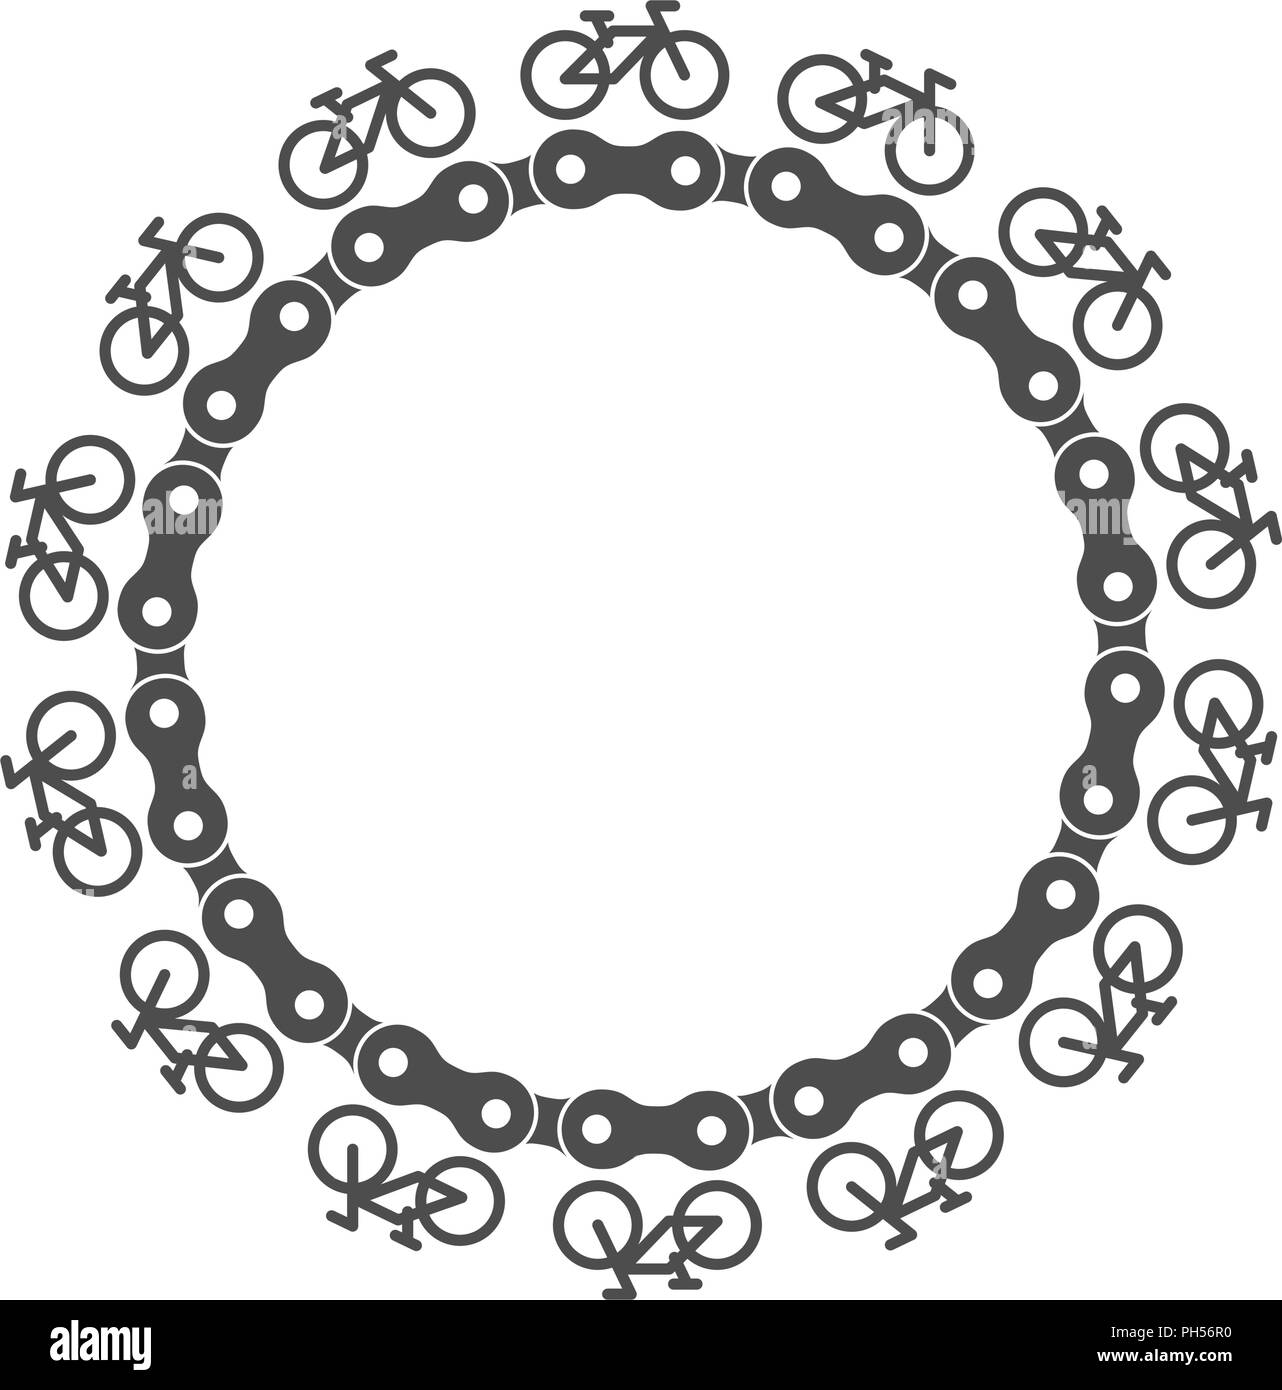 Bike Chain Circle Frame with Simple Bicycle Icons Around. Monochrome ...